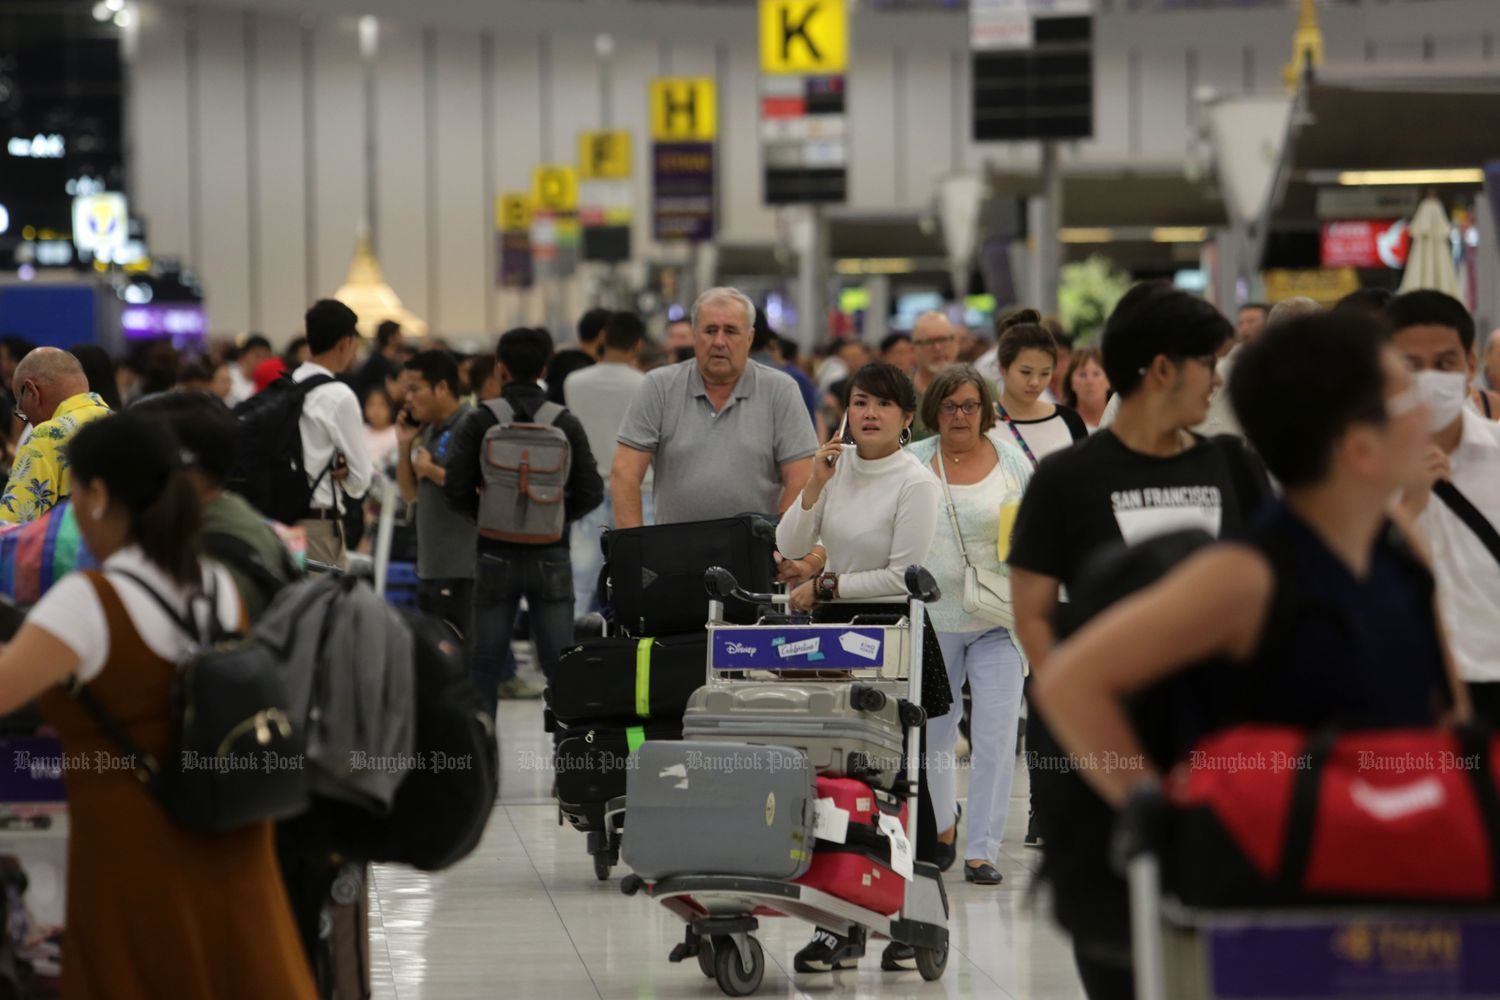 Suvarnabhumi reports a growing volume of passengers between October last year and May of this year, with a total of 44 million passengers using the country's main airport during the period. (Bangkok Post file photo)